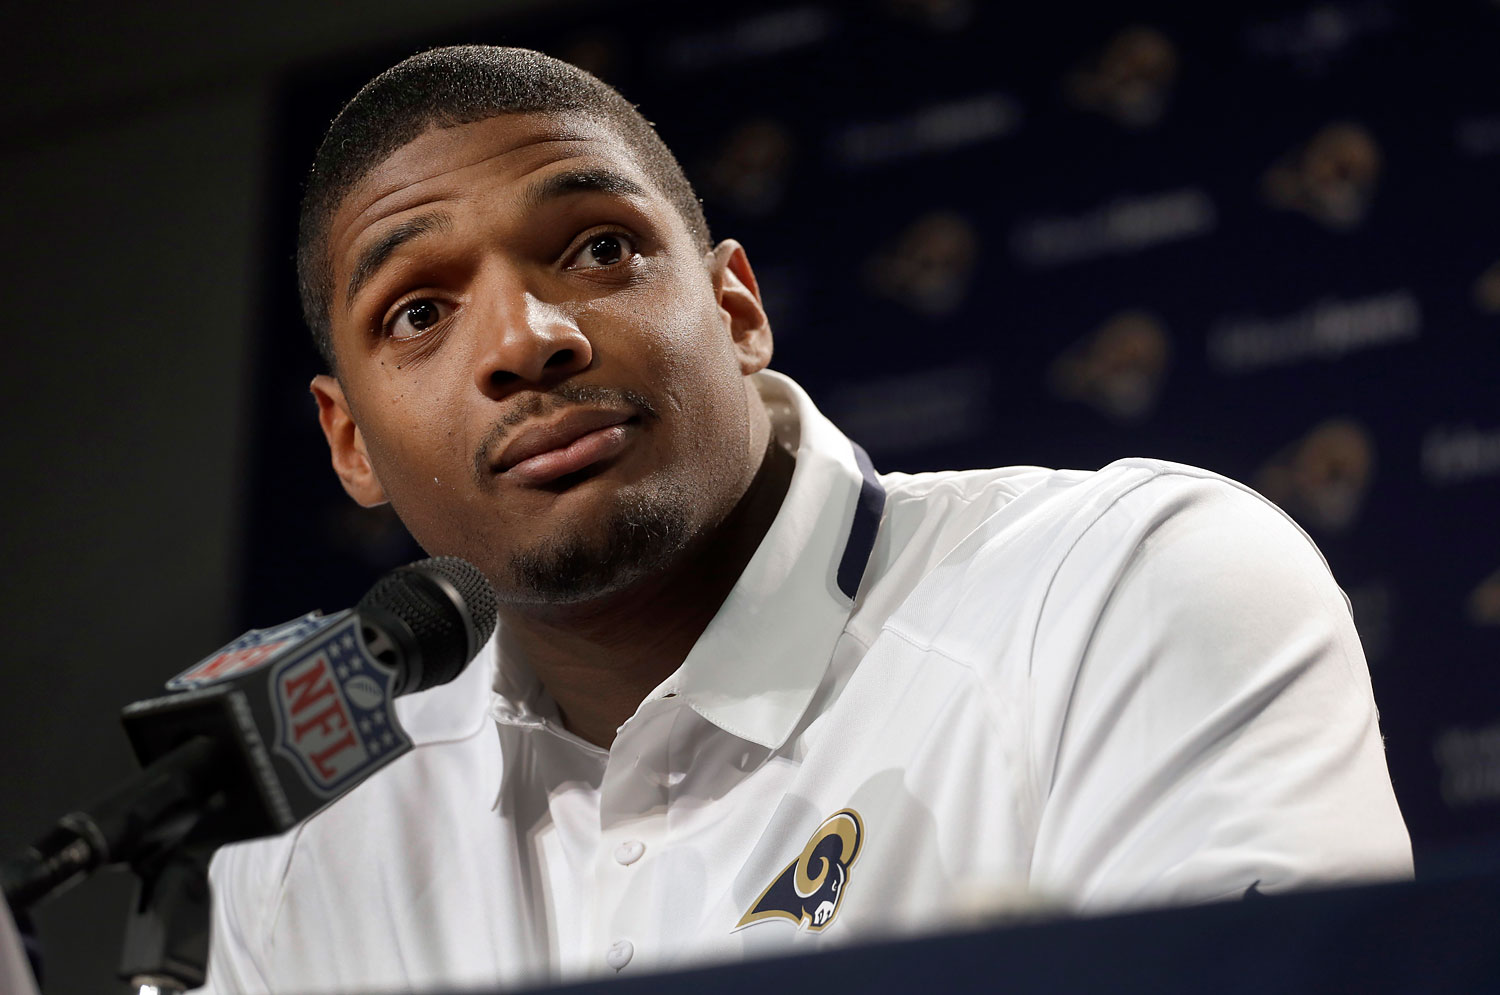 St. Louis Rams seventh-round draft pick Michael Sam listens to a question during a news conference at the NFL football team's practice facility, May 13, 2014, in St. Louis.